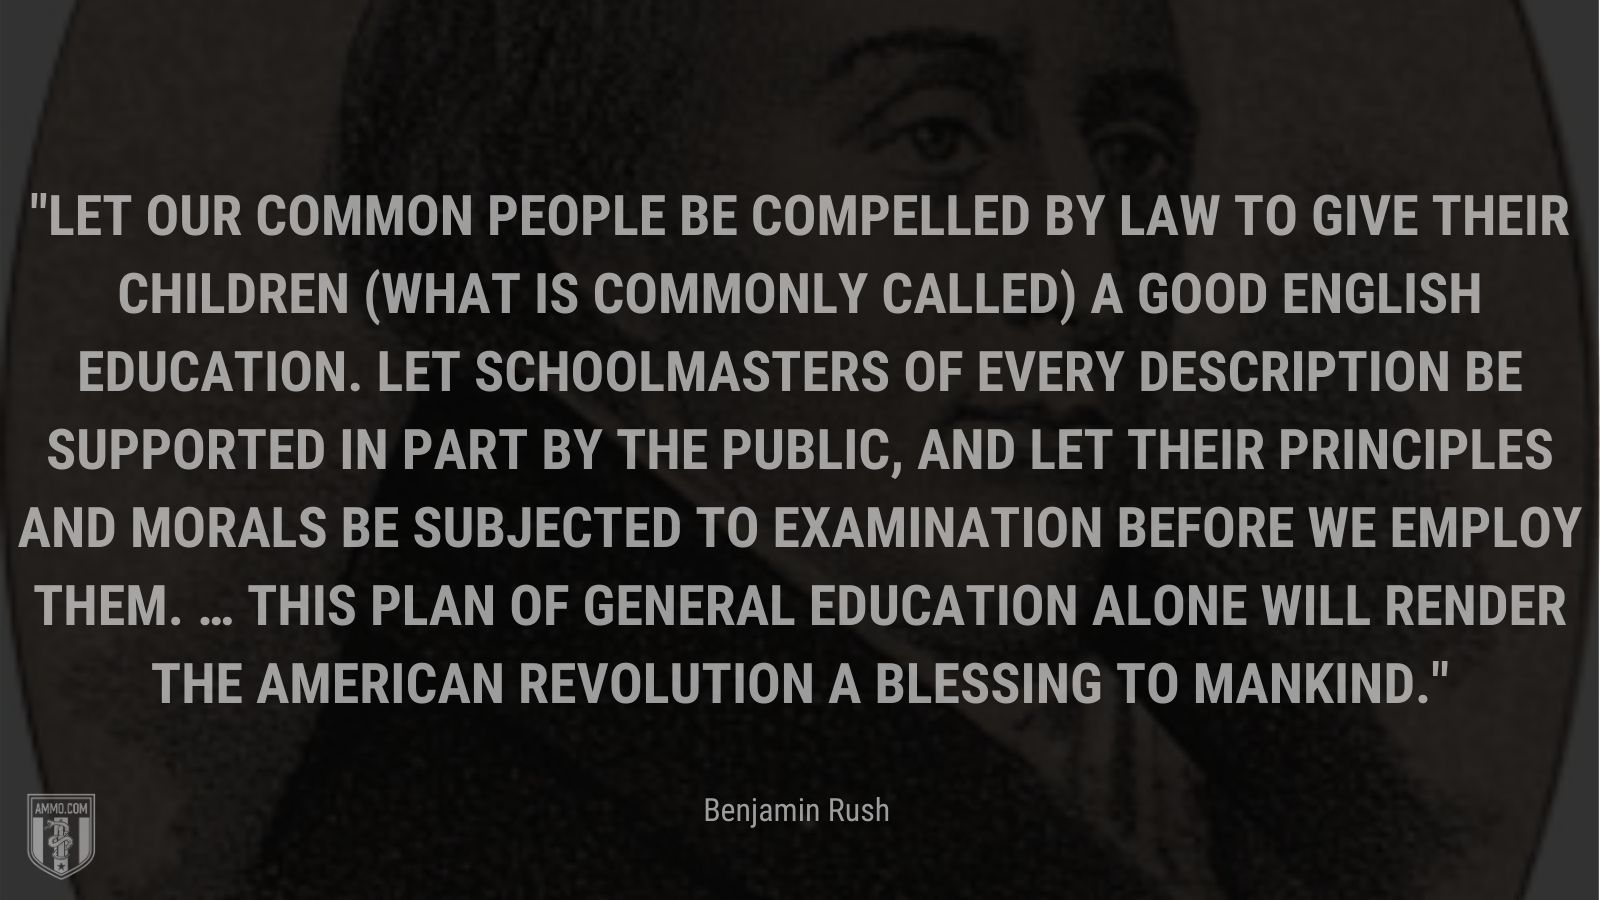 """""""Let our common people be compelled by law to give their children (what is commonly called) a good English education. Let schoolmasters of every description be supported in part by the public, and let their principles and morals be subjected to examination before we employ them. … This plan of general education alone will render the American Revolution a blessing to mankind."""" - Benjamin Rush"""